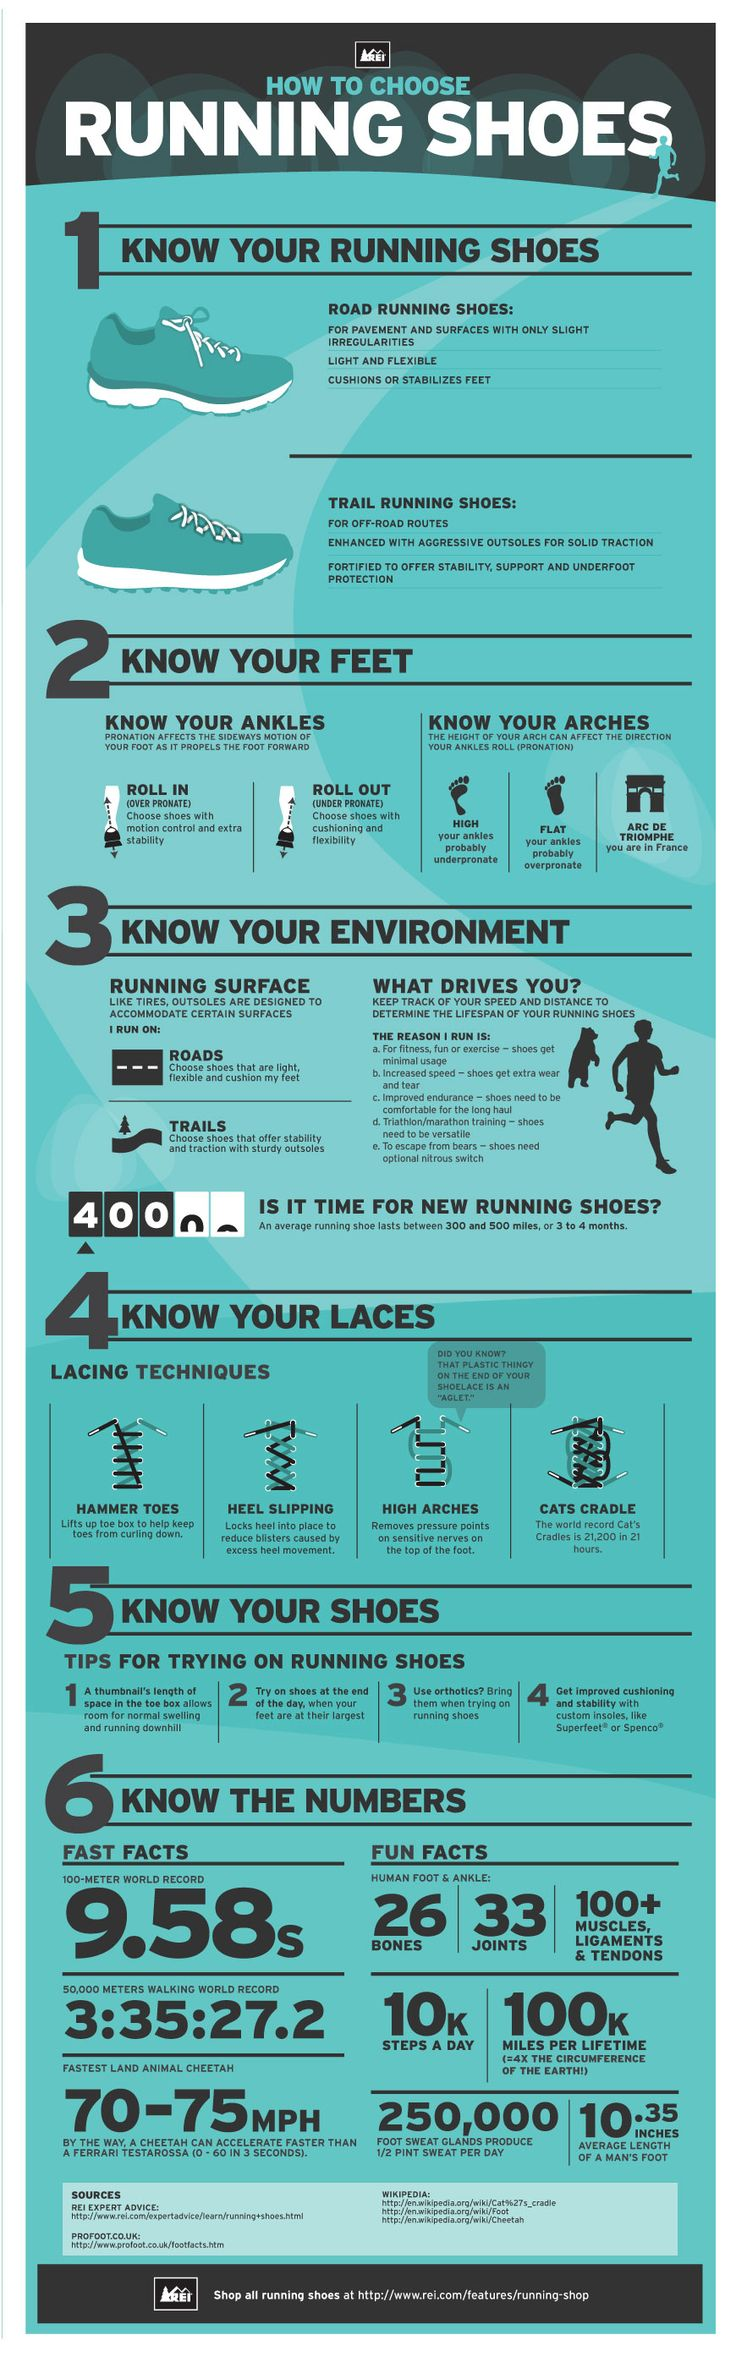 Running Style and Your Shoes...hmmm, I may have been buying the wrong shoes all along.